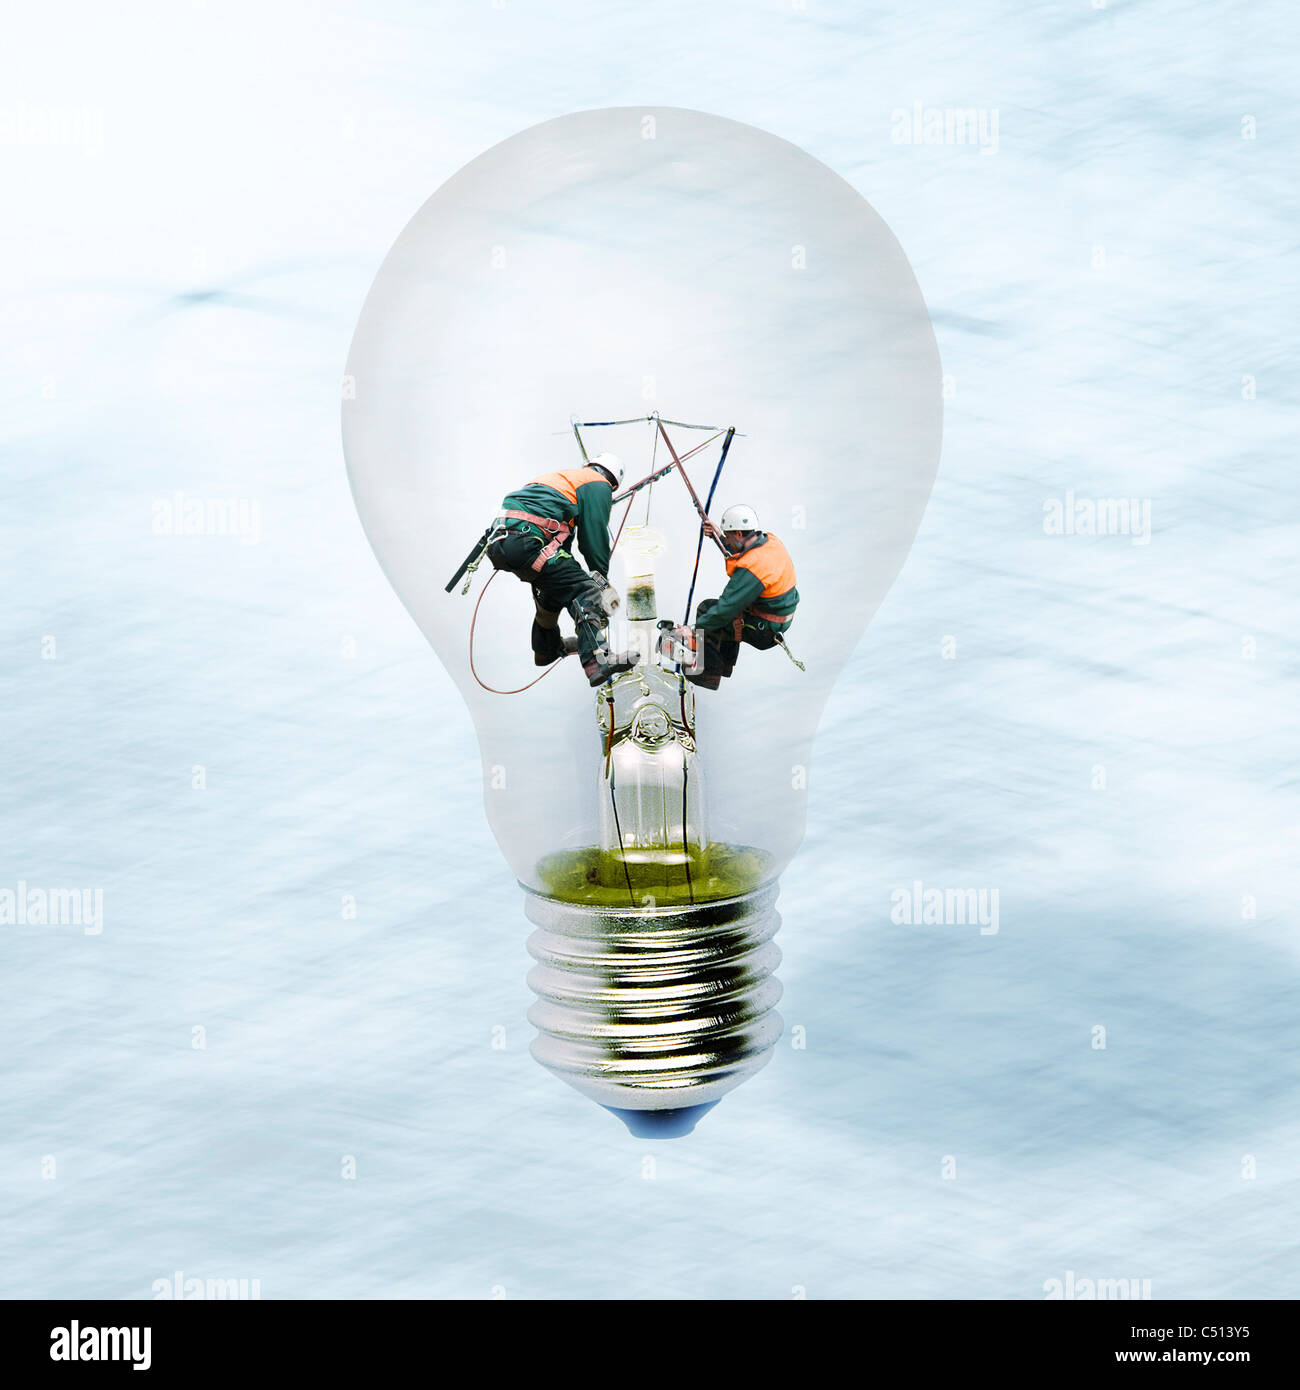 Linemen working inside of clear light bulb - Stock Image